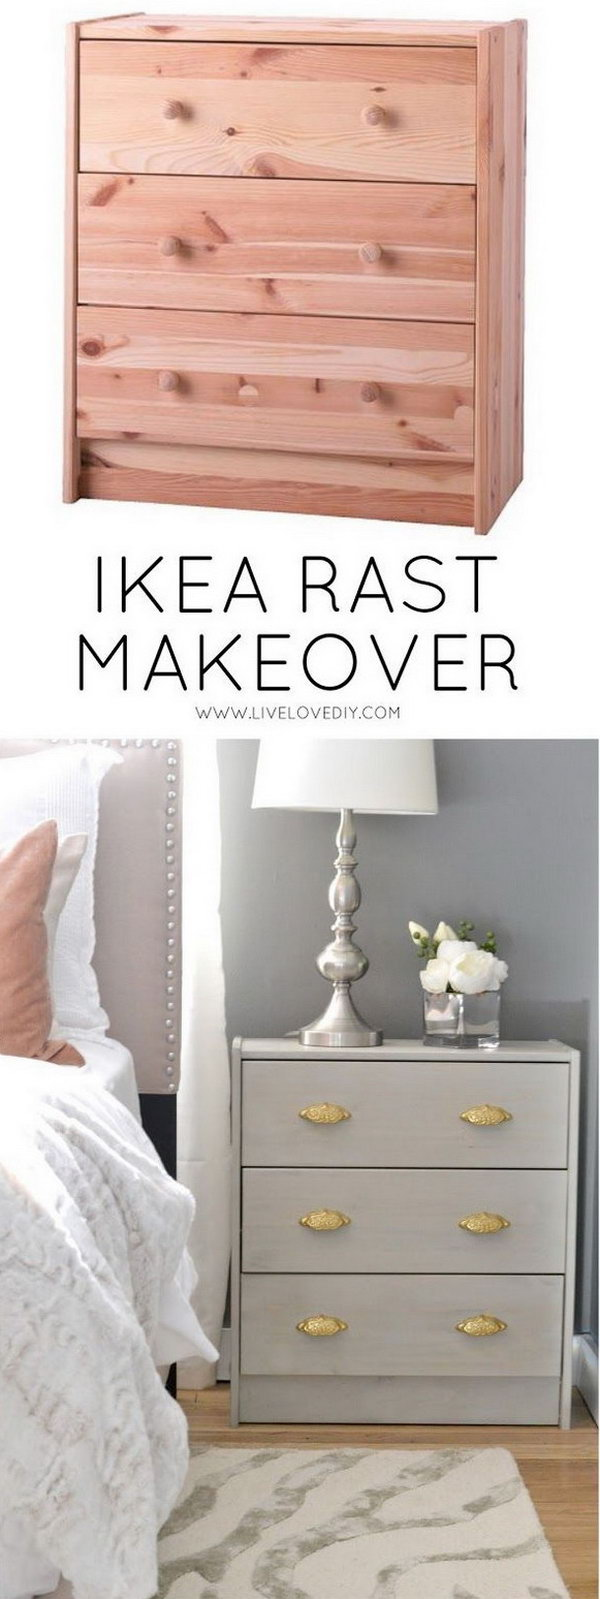 25 Simple And Creative Ikea Rast Hacks Hative